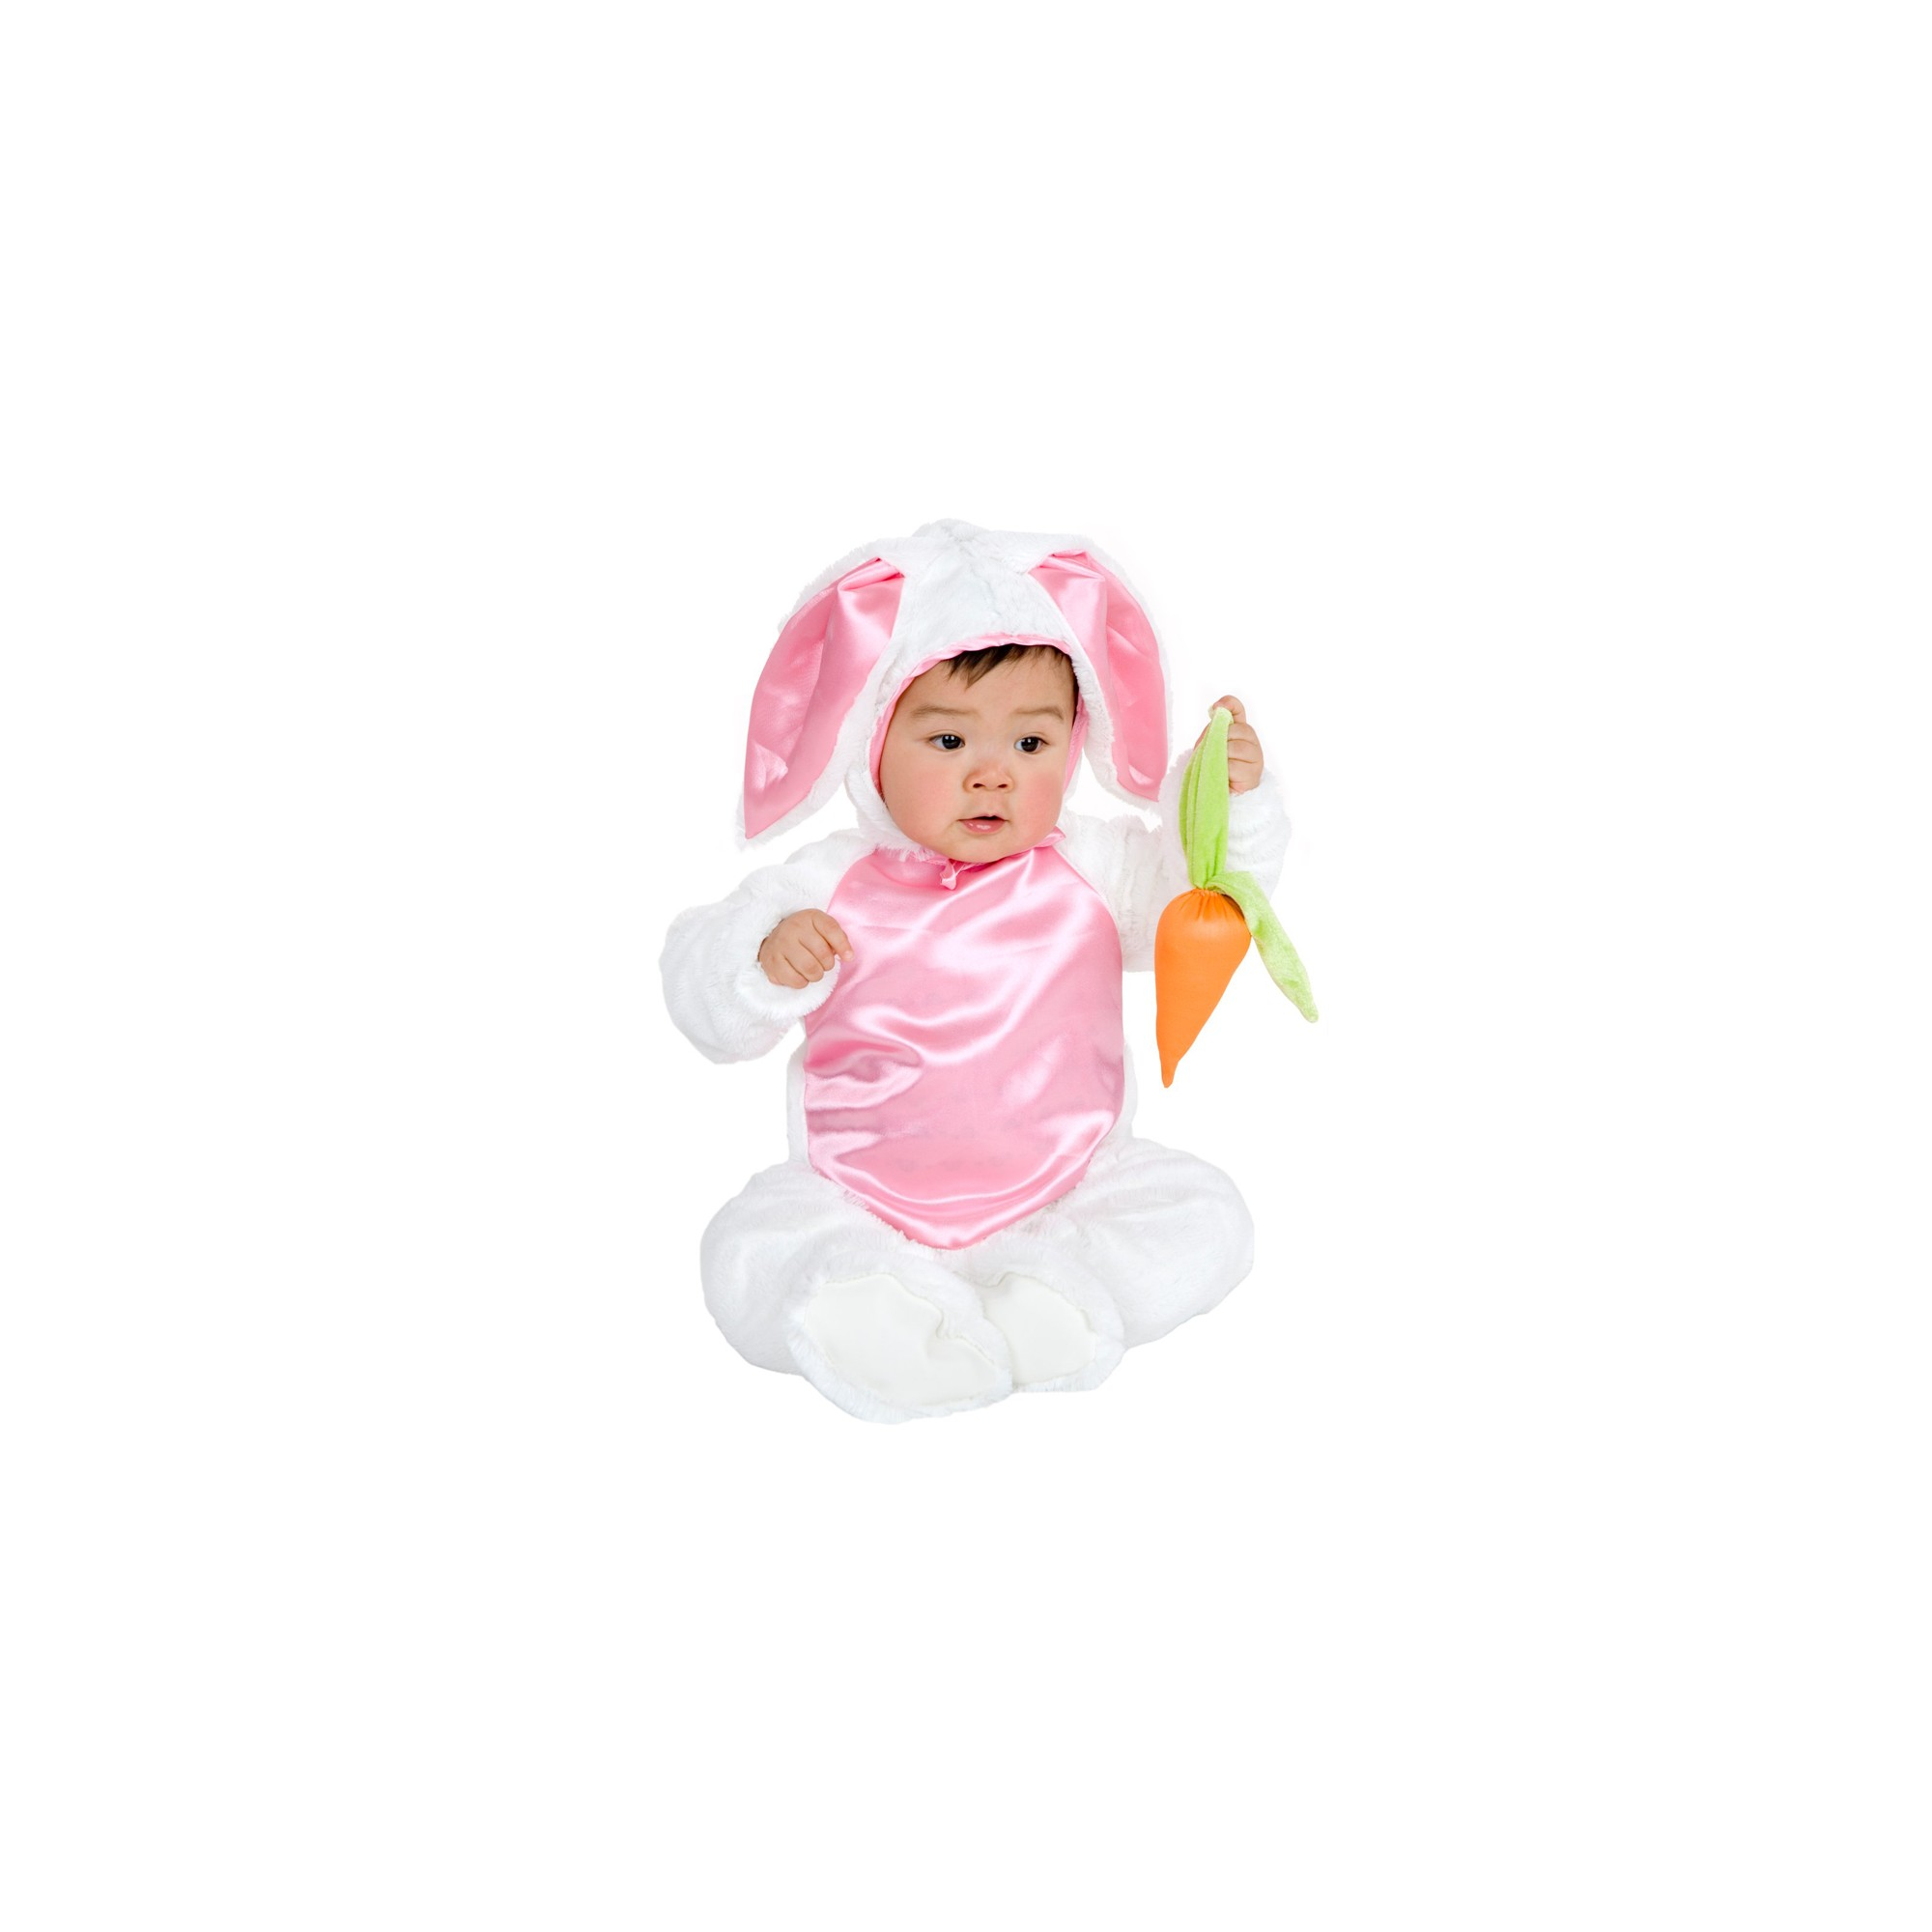 Halloween Baby Plush Bunny Costume 0-6M - Charades Costumes, Adult Unisex, Pink